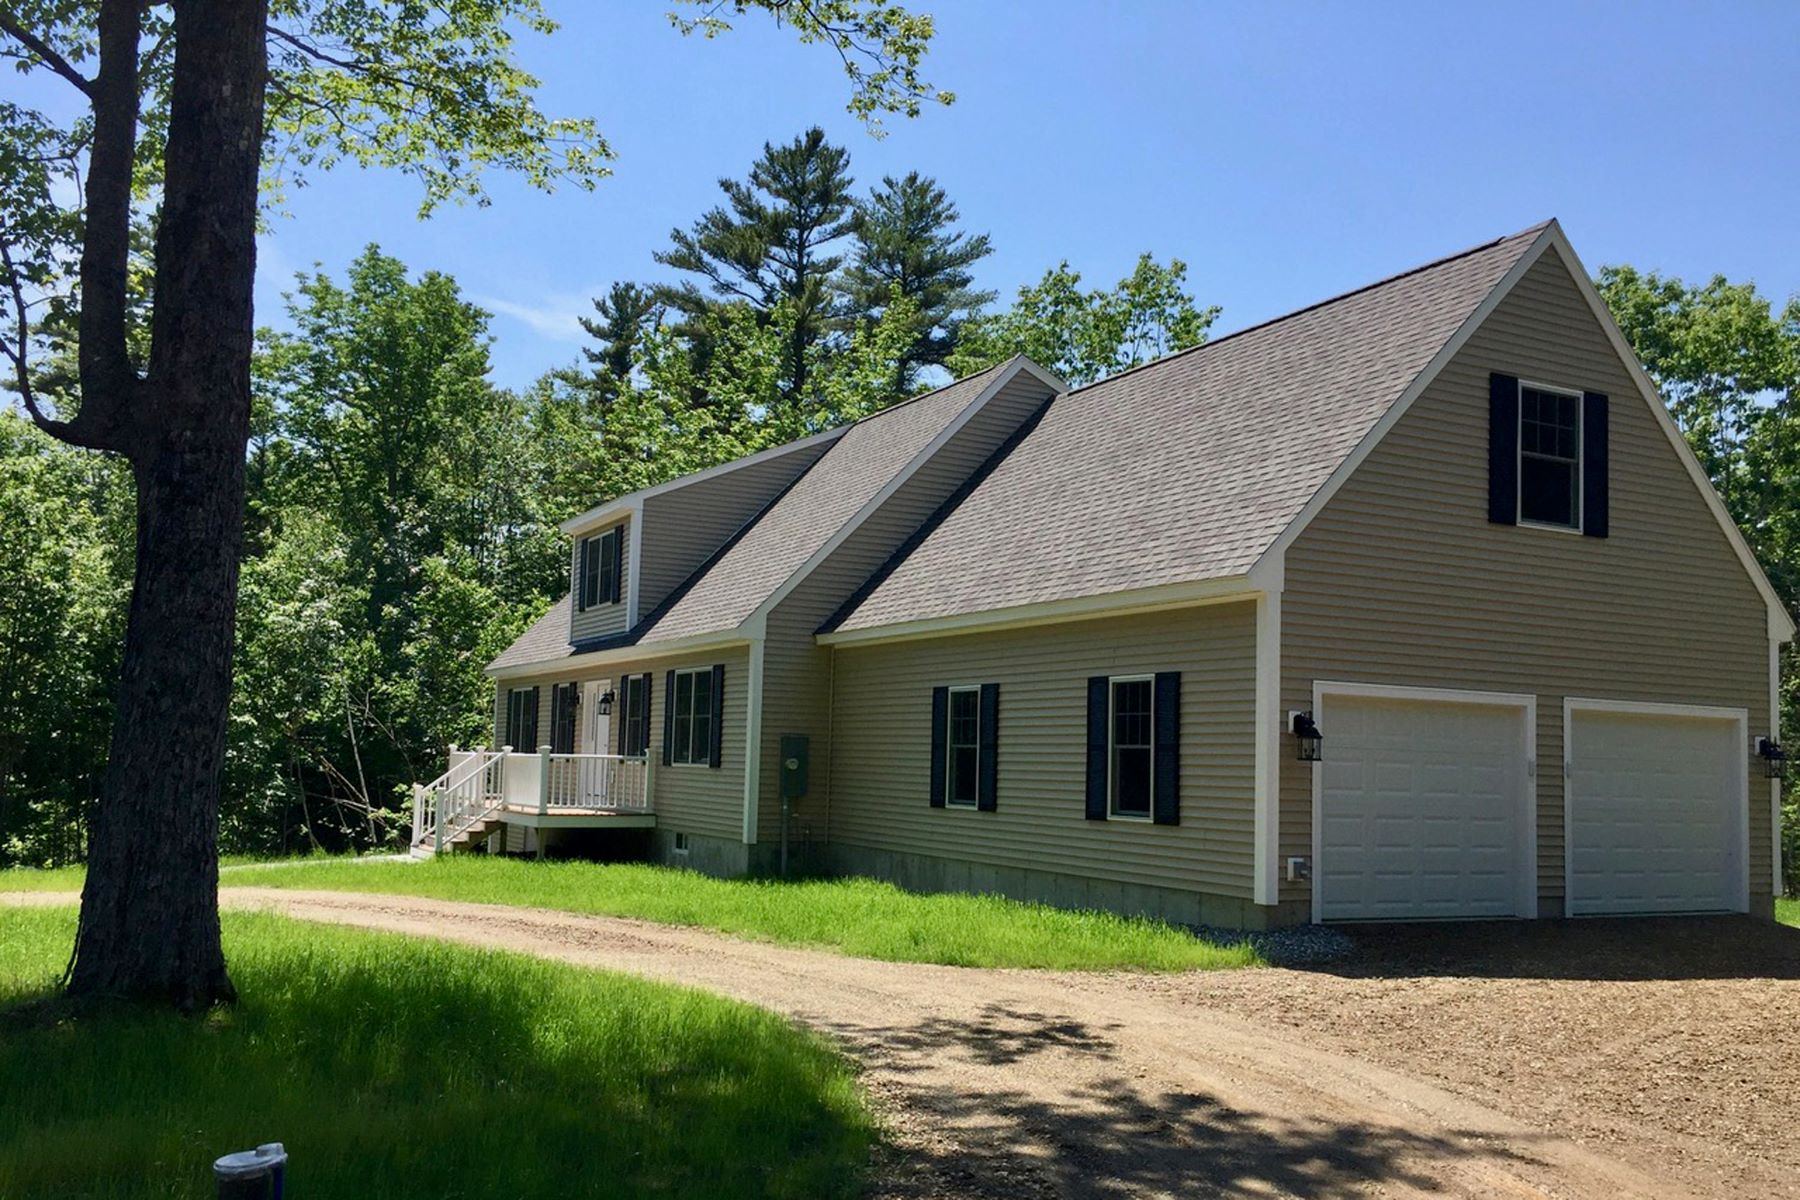 Single Family Homes for Active at 6 Cooper Way South Bristol, Maine 04573 United States